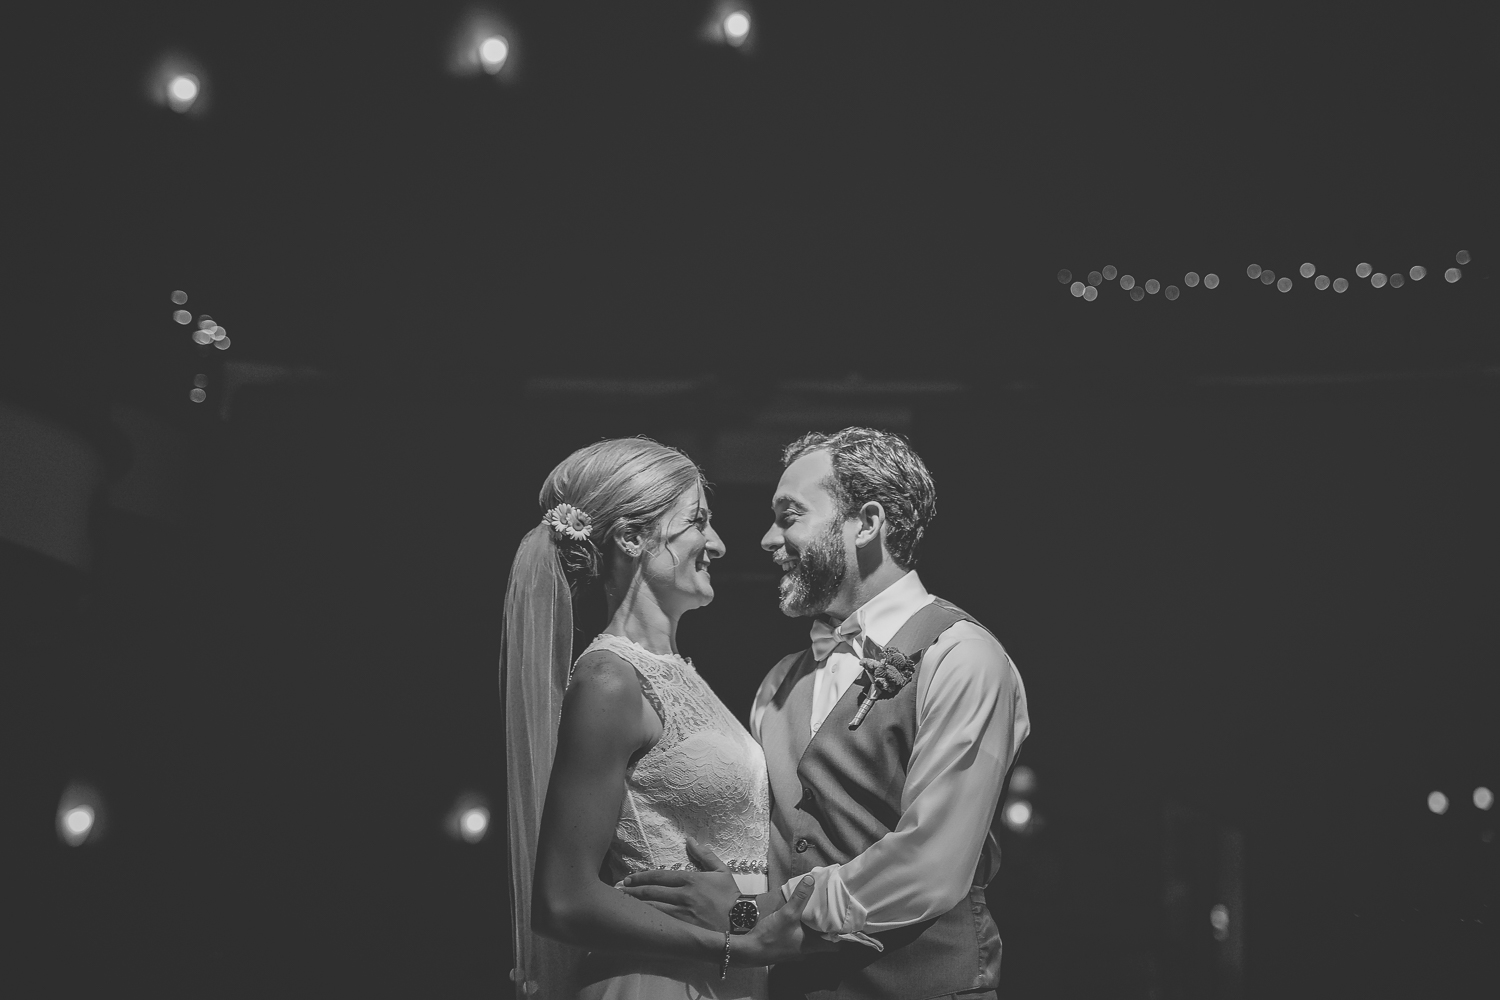 minneapolis wedding photographer-11.jpg